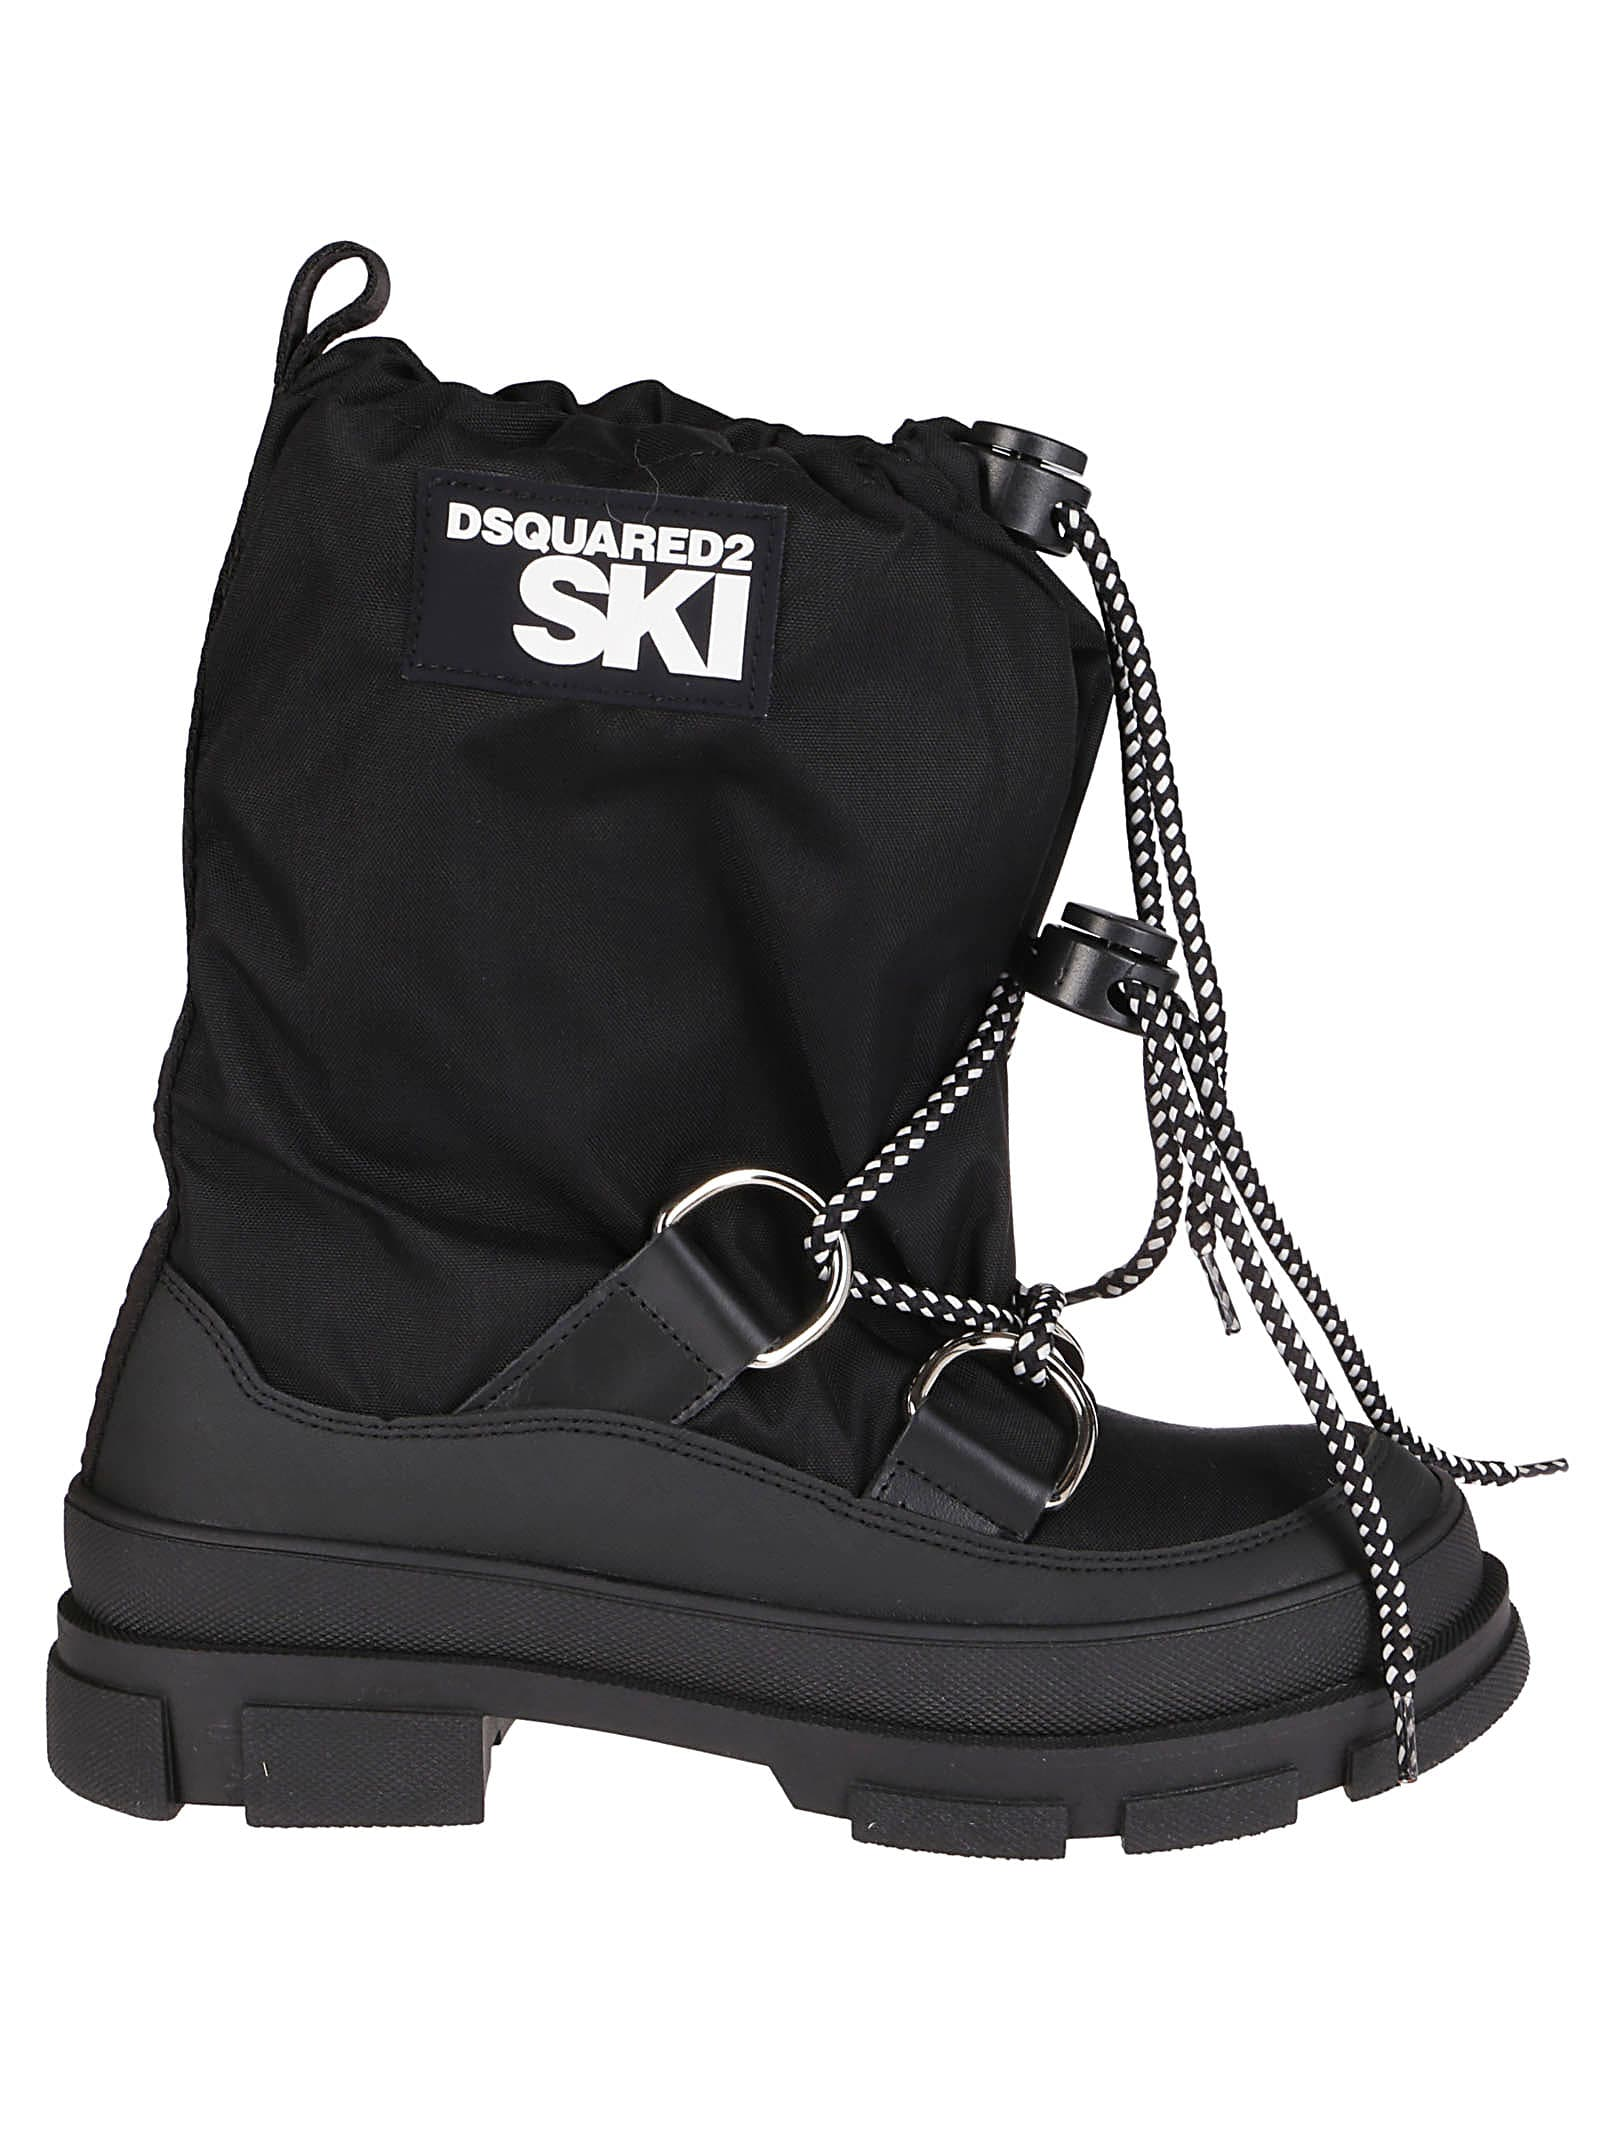 Dsquared2 BLACK LEATHER AND FABRIC SNOW BOOTS